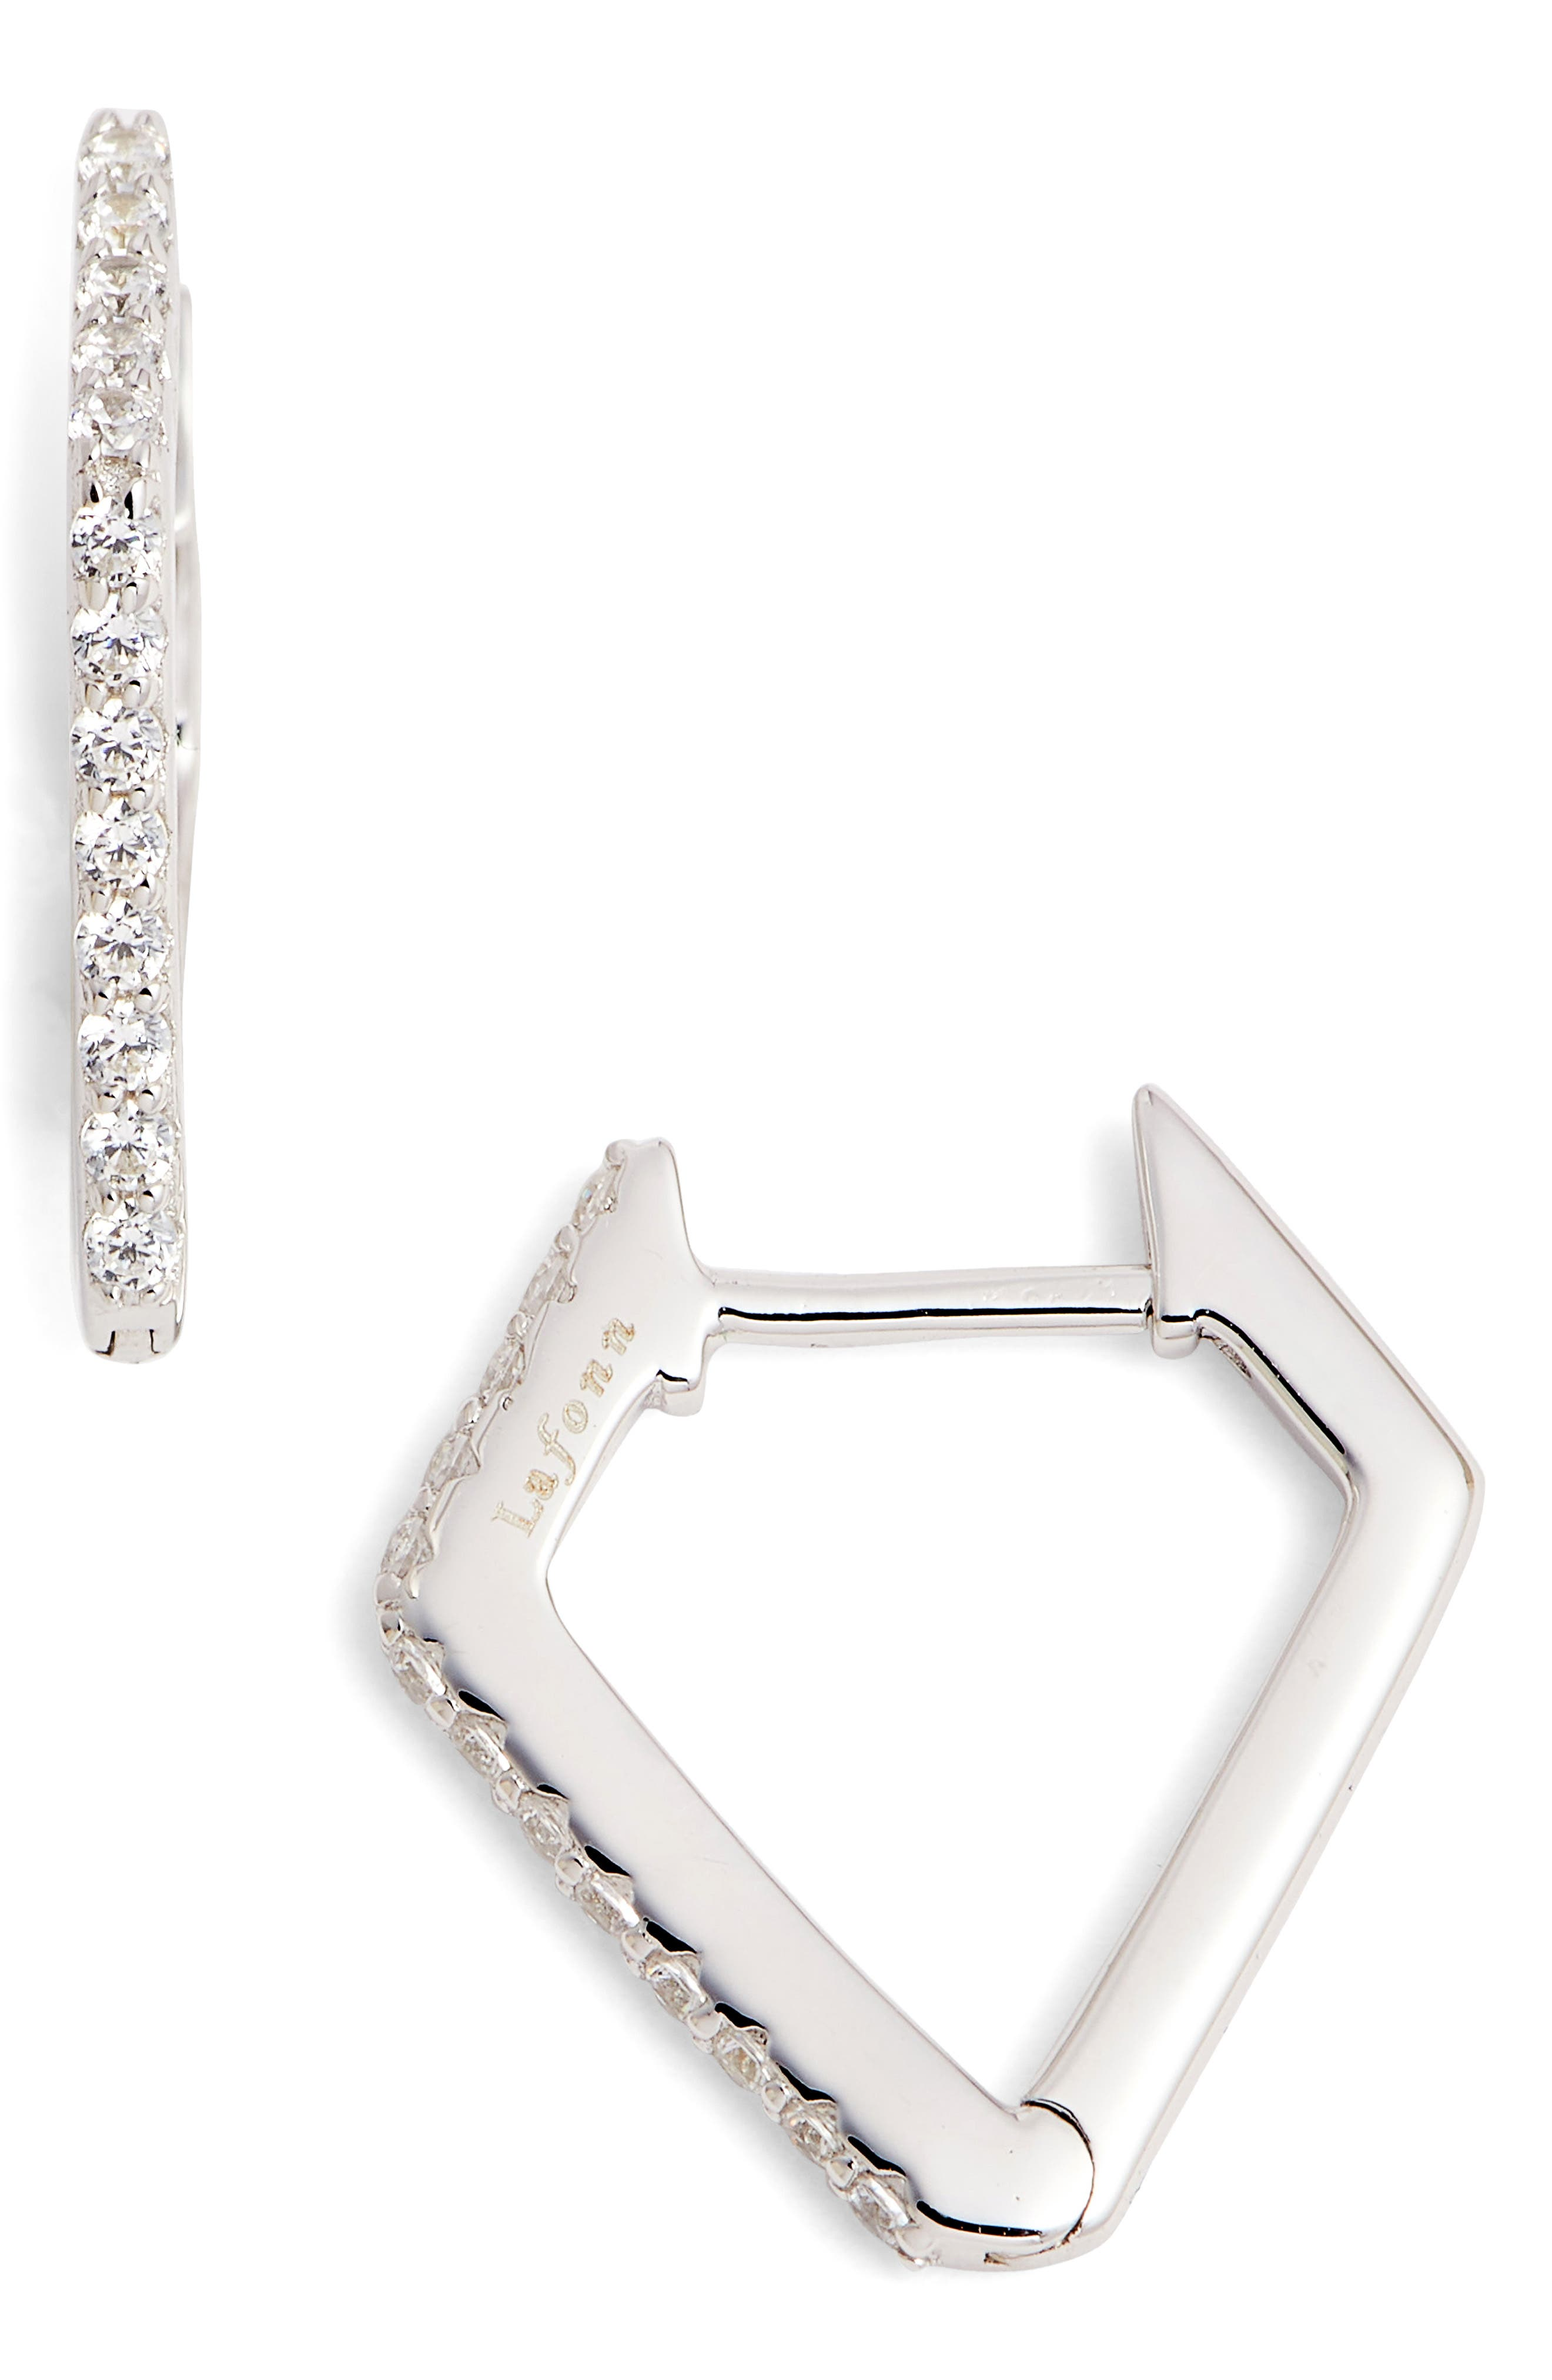 Diamond-Shaped Hoop Earrings,                         Main,                         color, Silver/ Clear